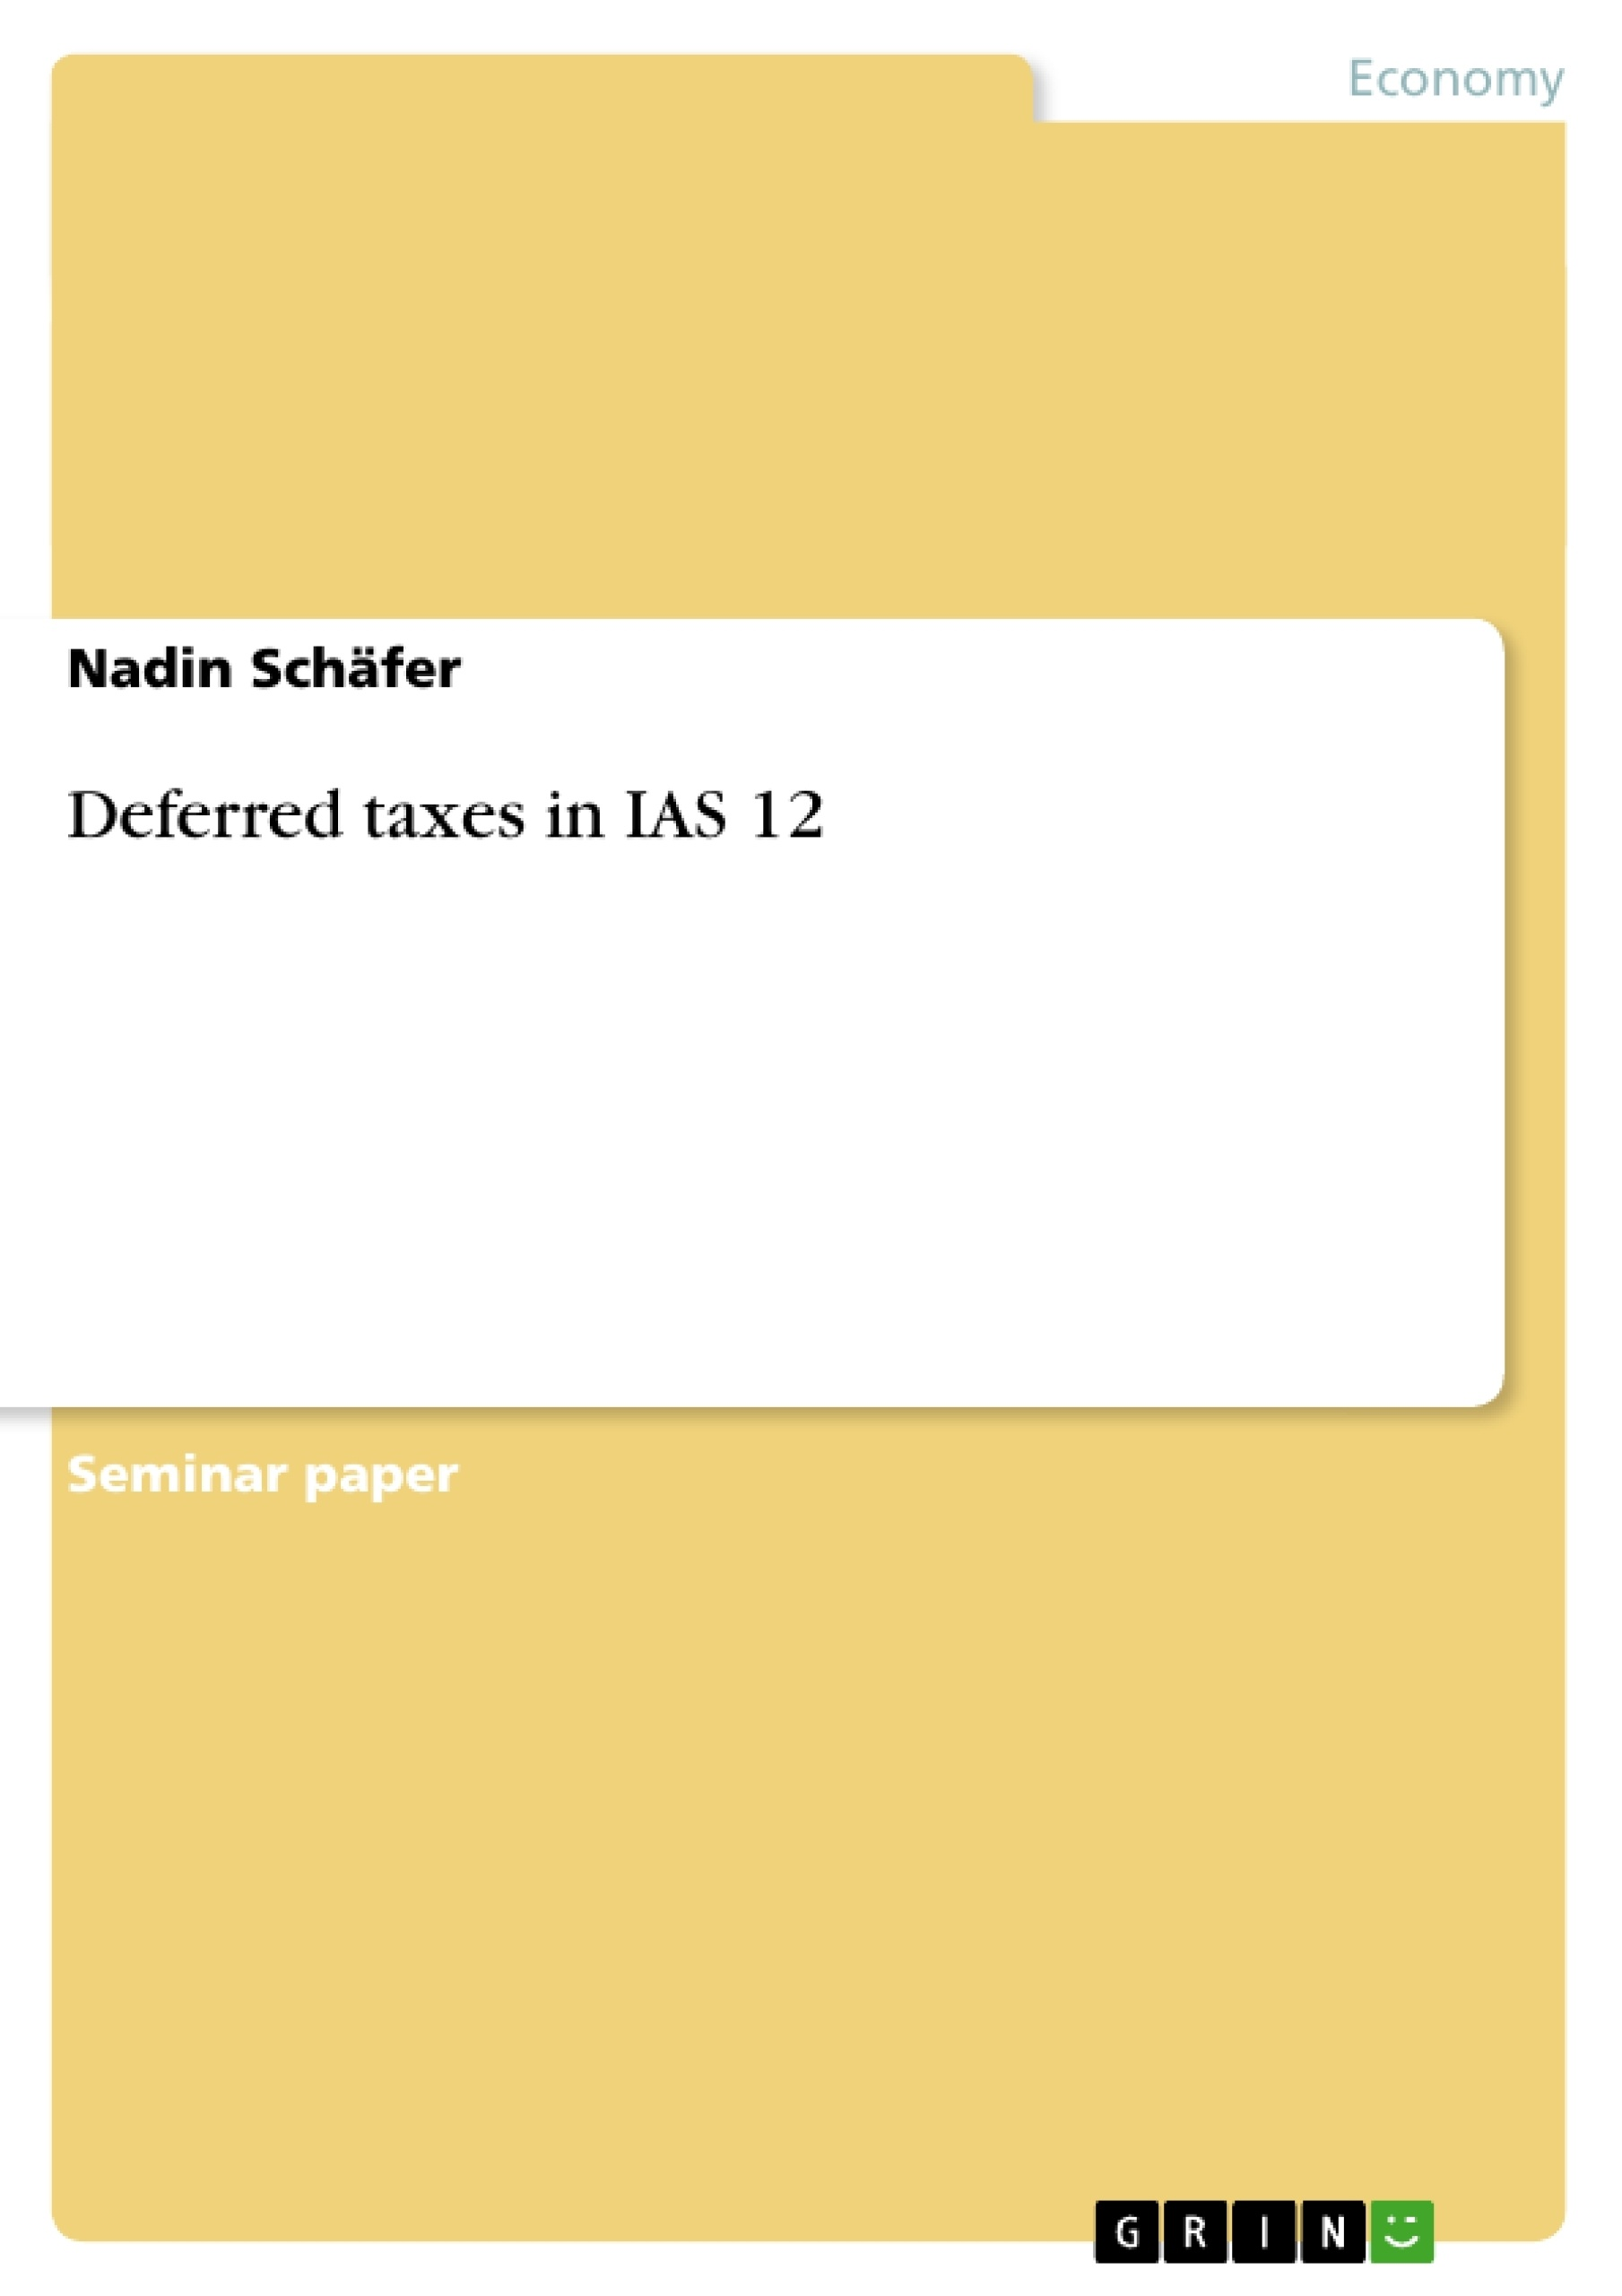 Title: Deferred taxes in IAS 12